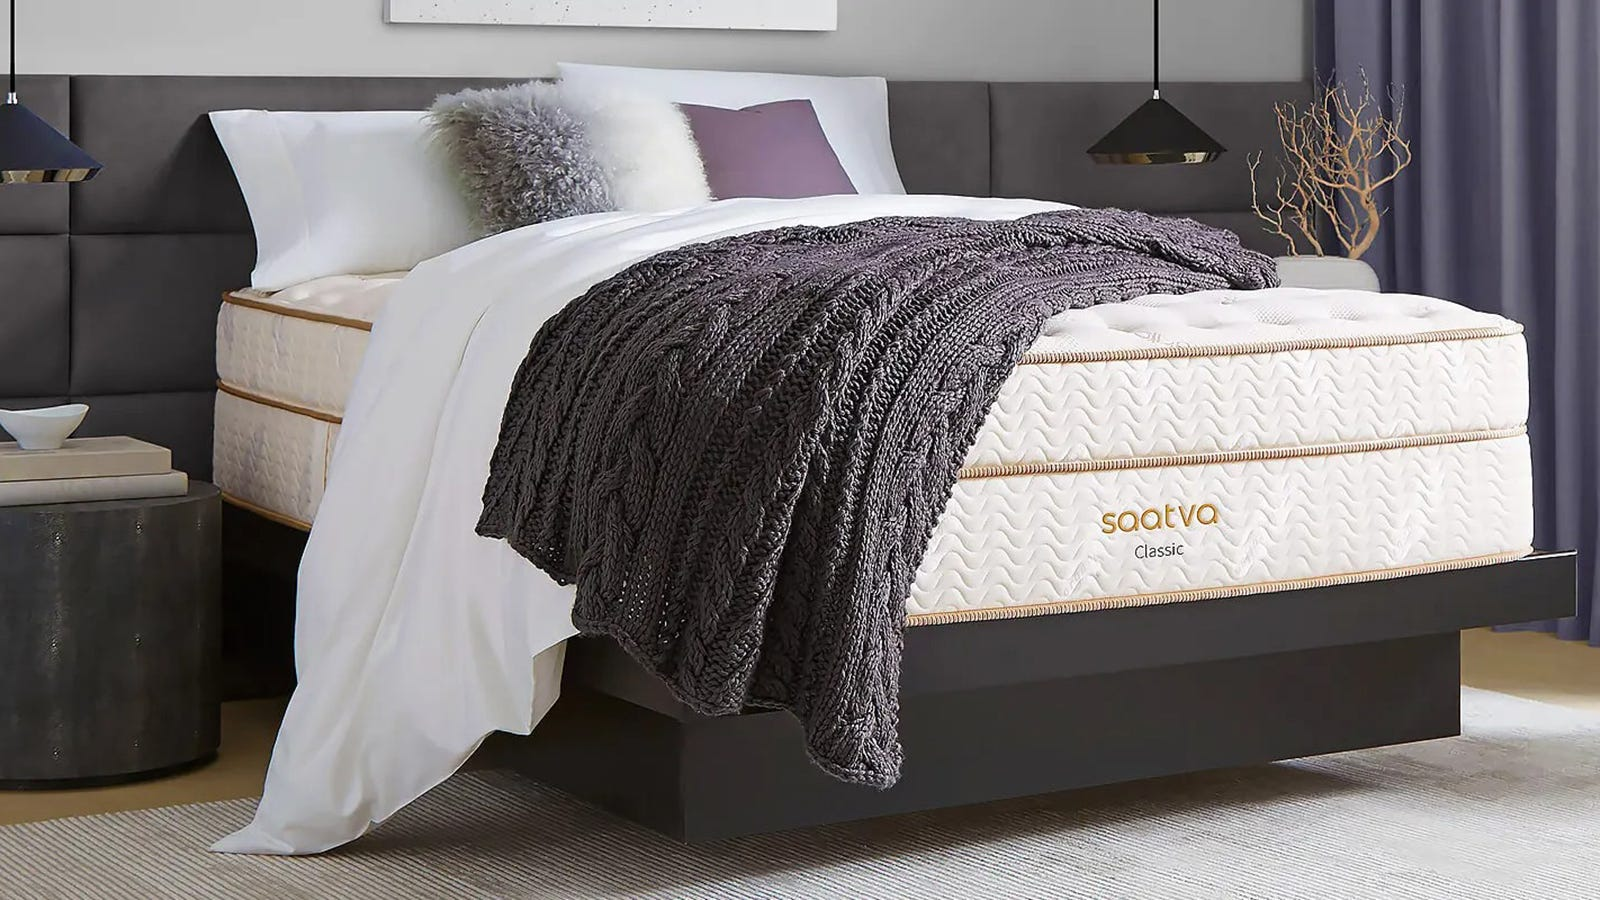 Save big on the best-selling Saatva mattress for today only